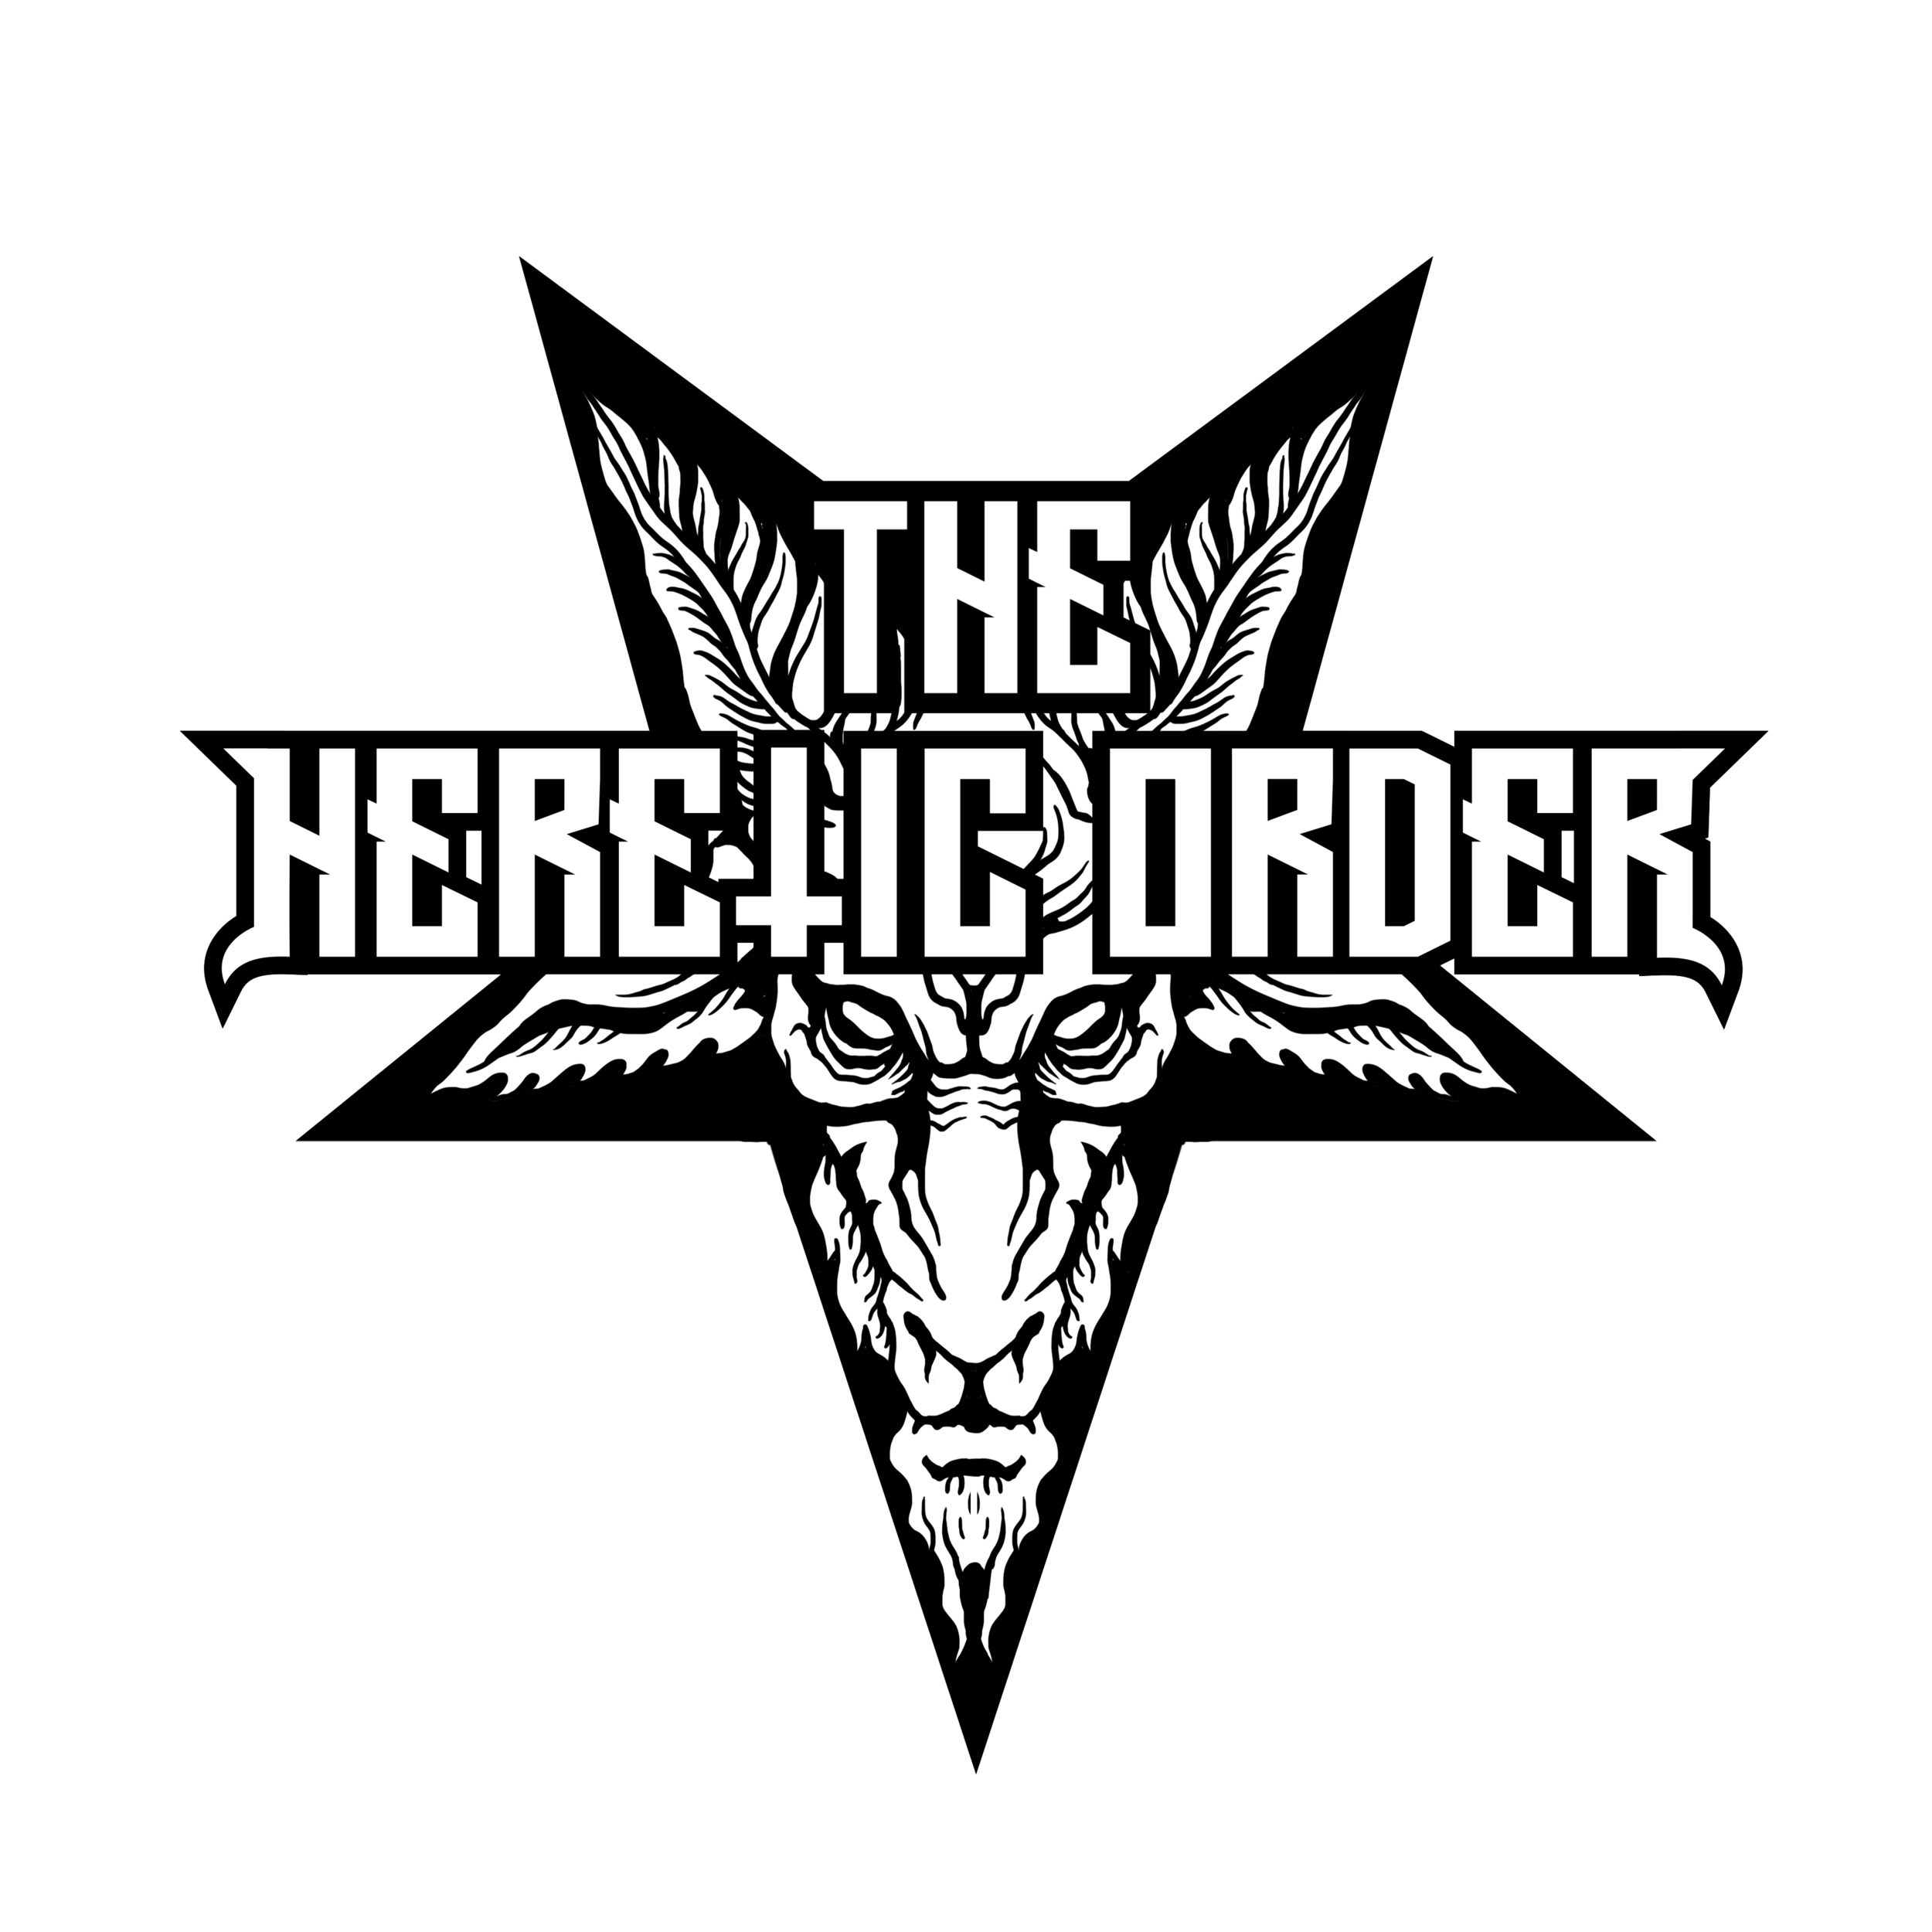 heretic order logo new copy 2.png